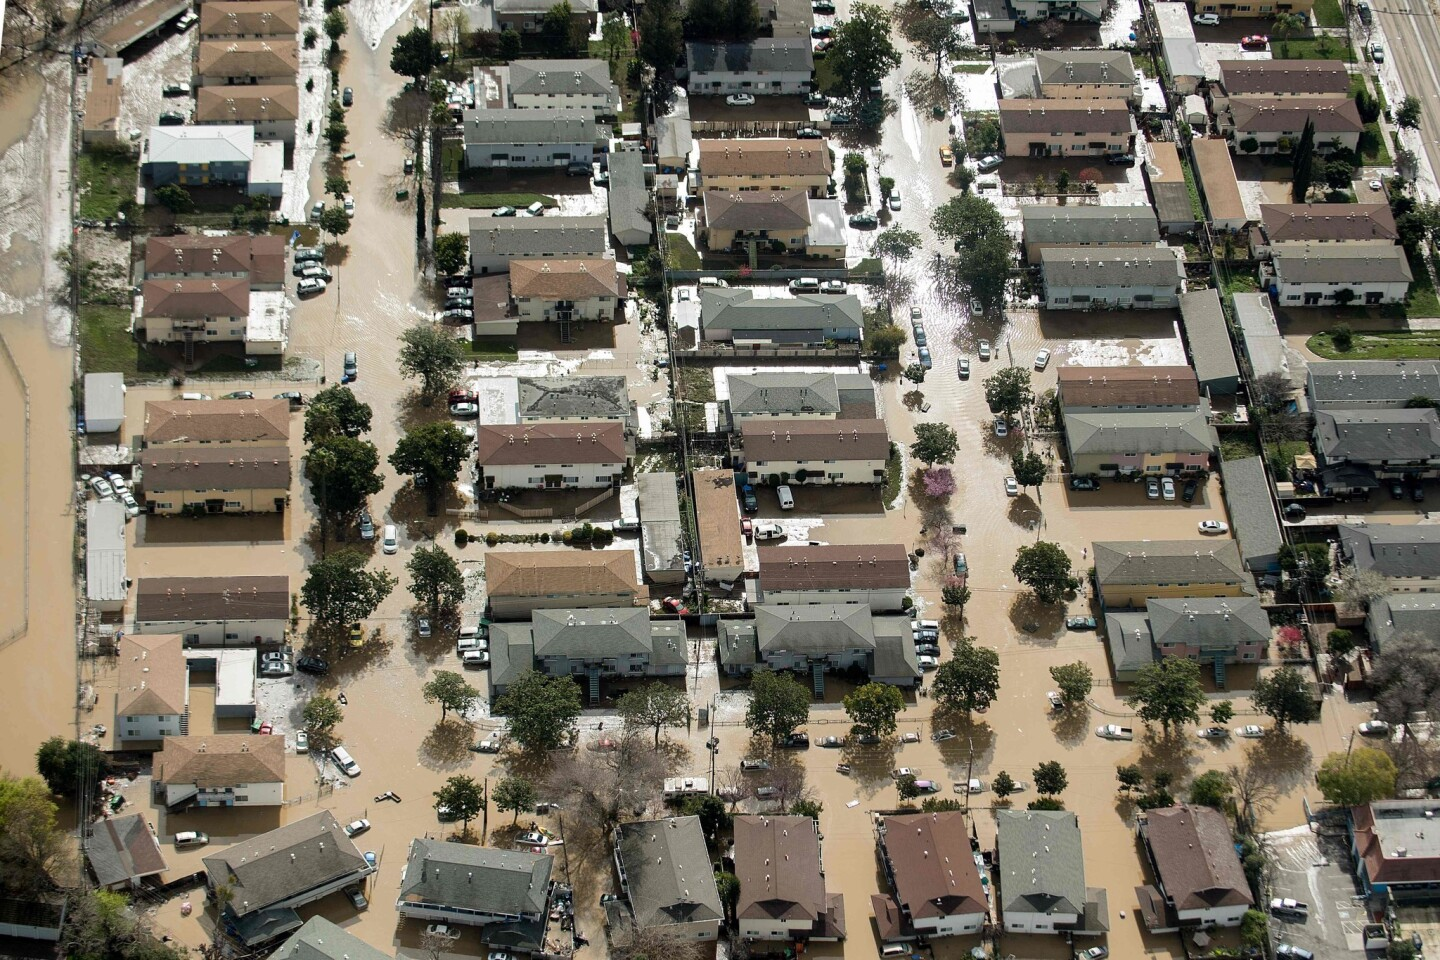 Floodwater surrounds homes in San Jose on Wednesday. Thousands of people were ordered to evacuate their homes as neighborhoods were inundated.